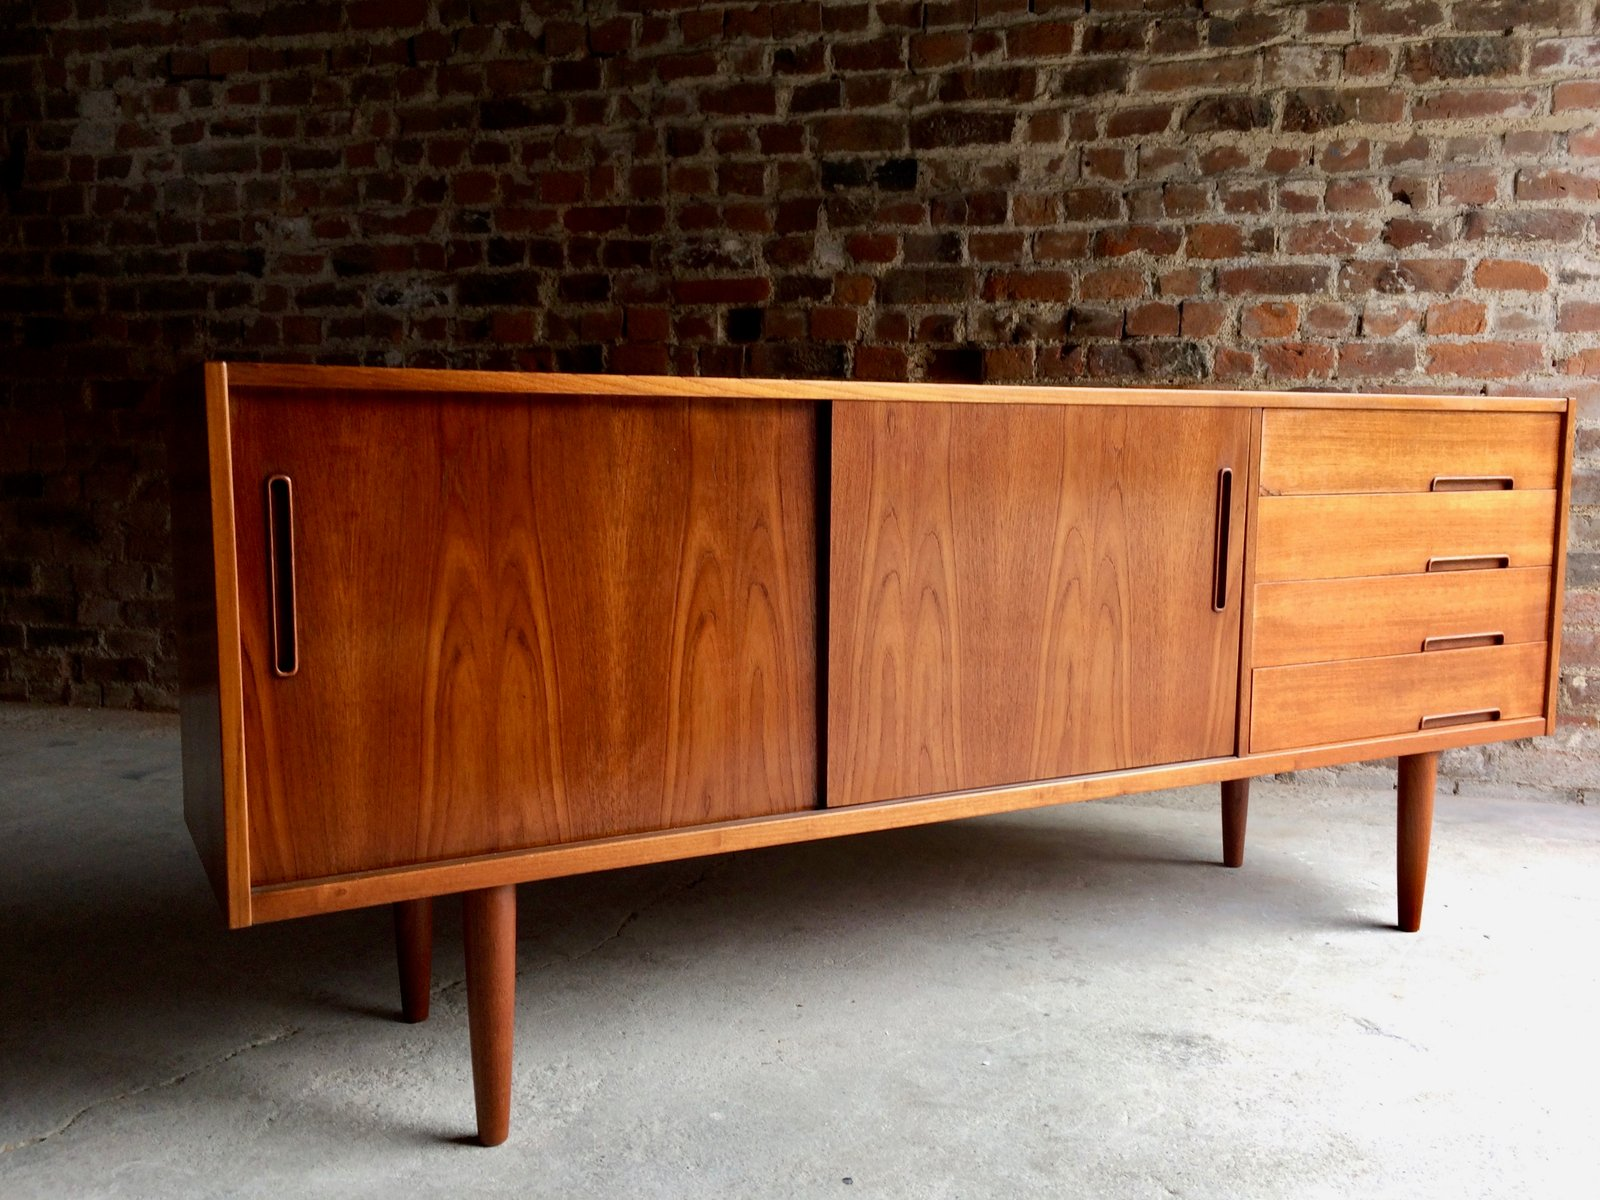 vintage trento teak sideboard by nils jonsson for troeds bj rnum for sale at pamono. Black Bedroom Furniture Sets. Home Design Ideas